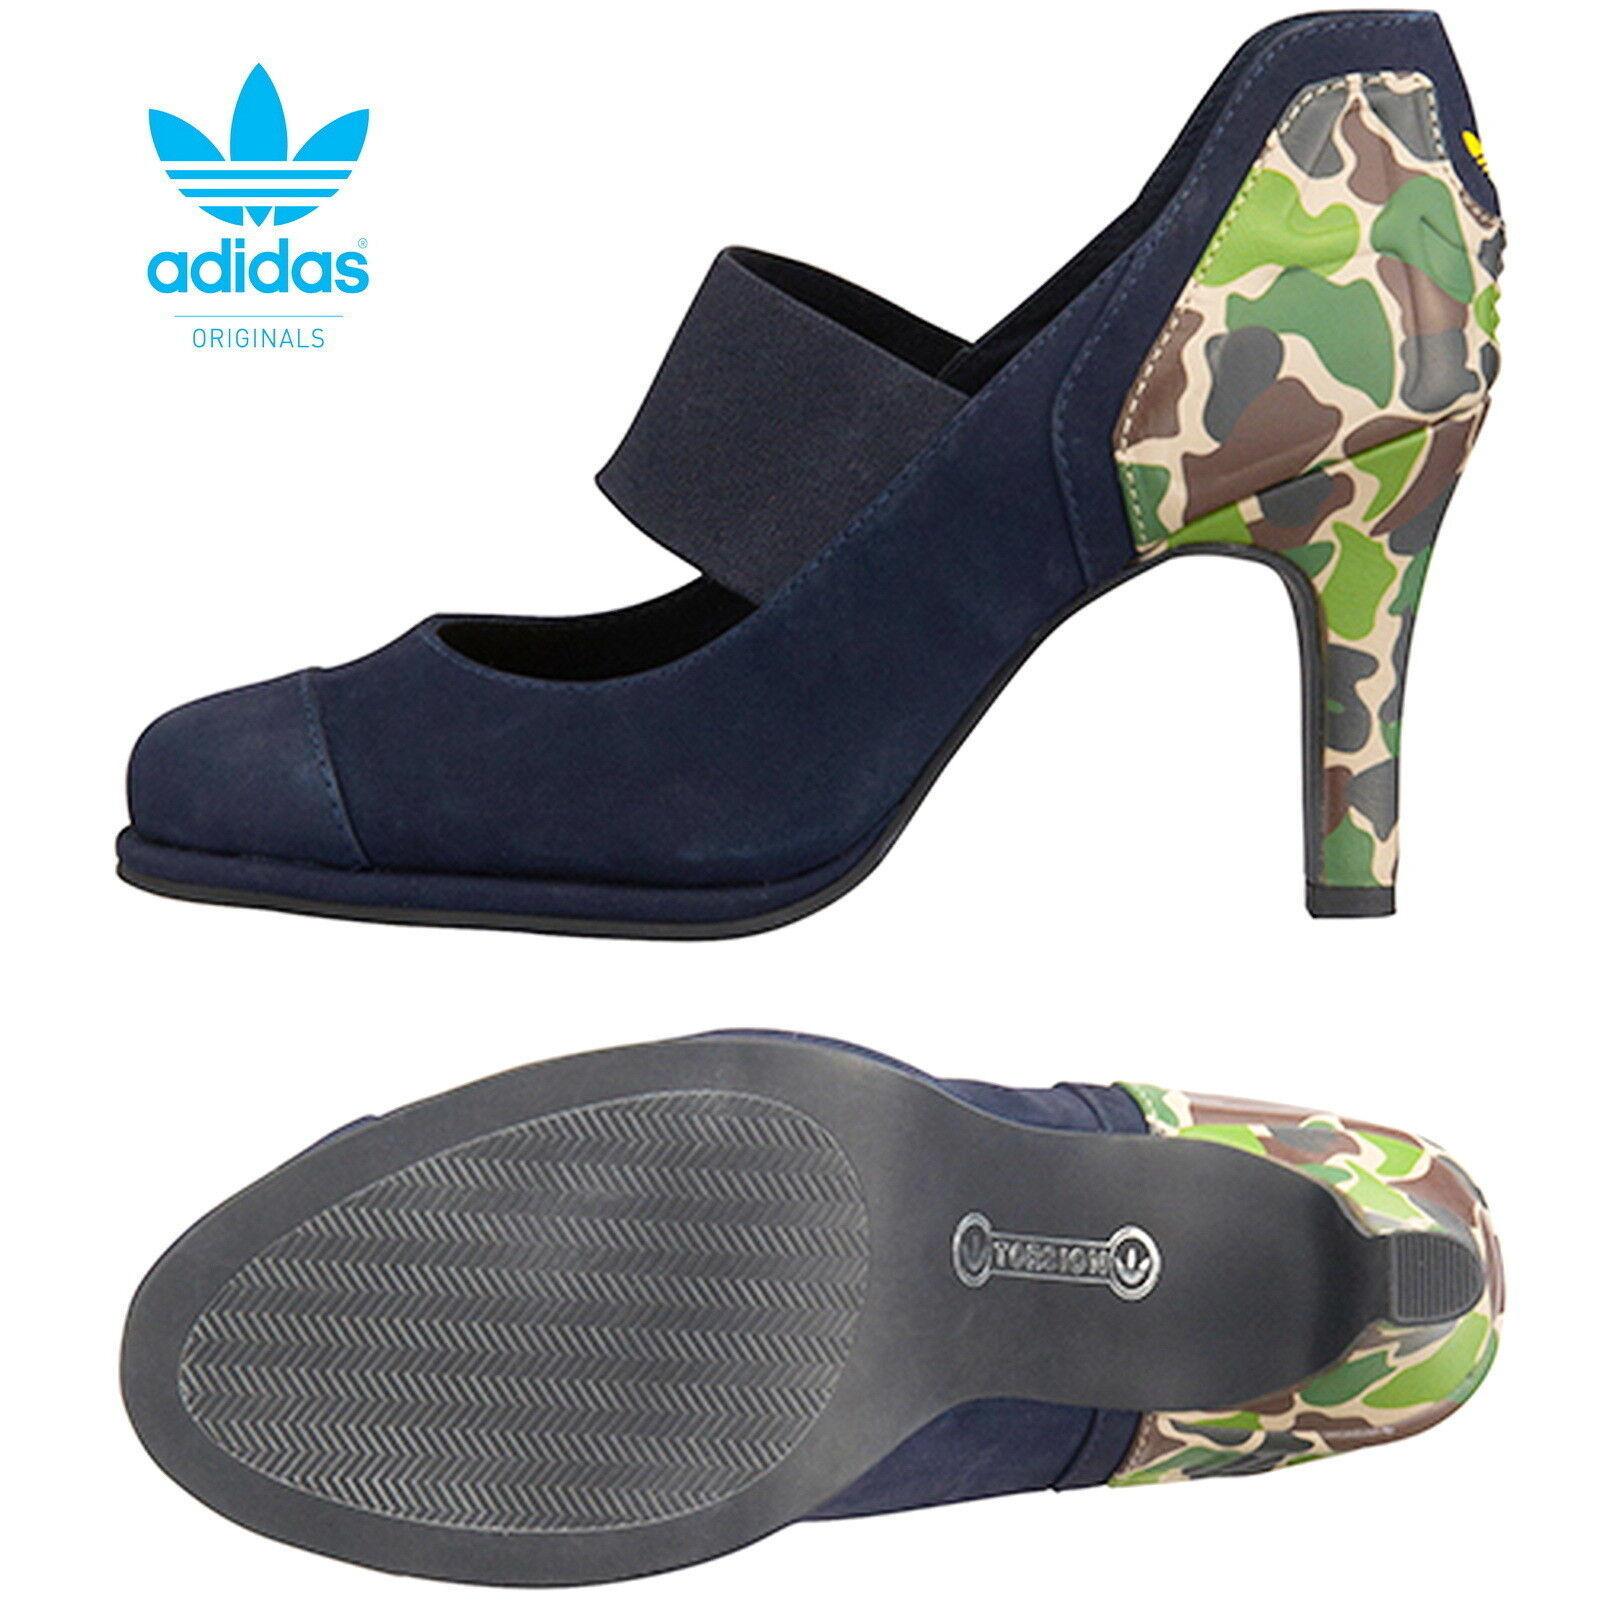 colorways incredibili ADIDAS ZX heel DA DA DA DONNA PUMPS Originals FB. Navy darkblu g96569  stile classico